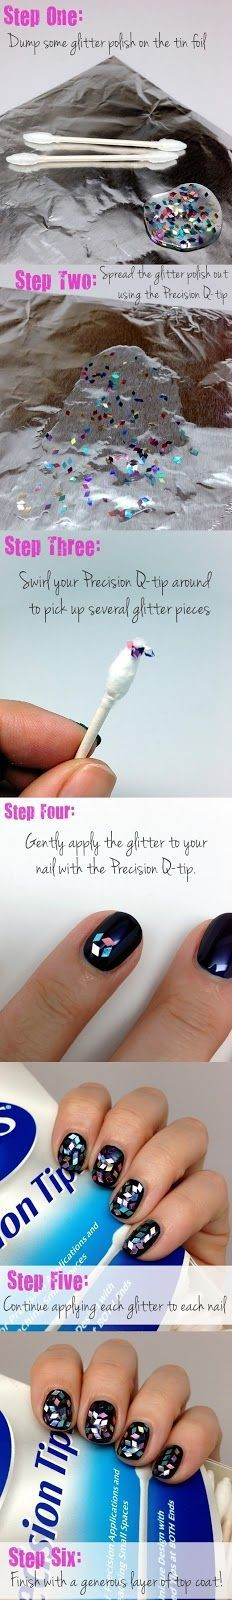 Get the perfect glitter placement for your next DIY manicure with this easy how-to from using Q-tips Precision Tips. Love Nails, Fun Nails, Pretty Nails, Nail Care Tips, Nail Tips, Nails Decoradas, Diy Nail Designs, Types Of Nails, Beautiful Nail Designs